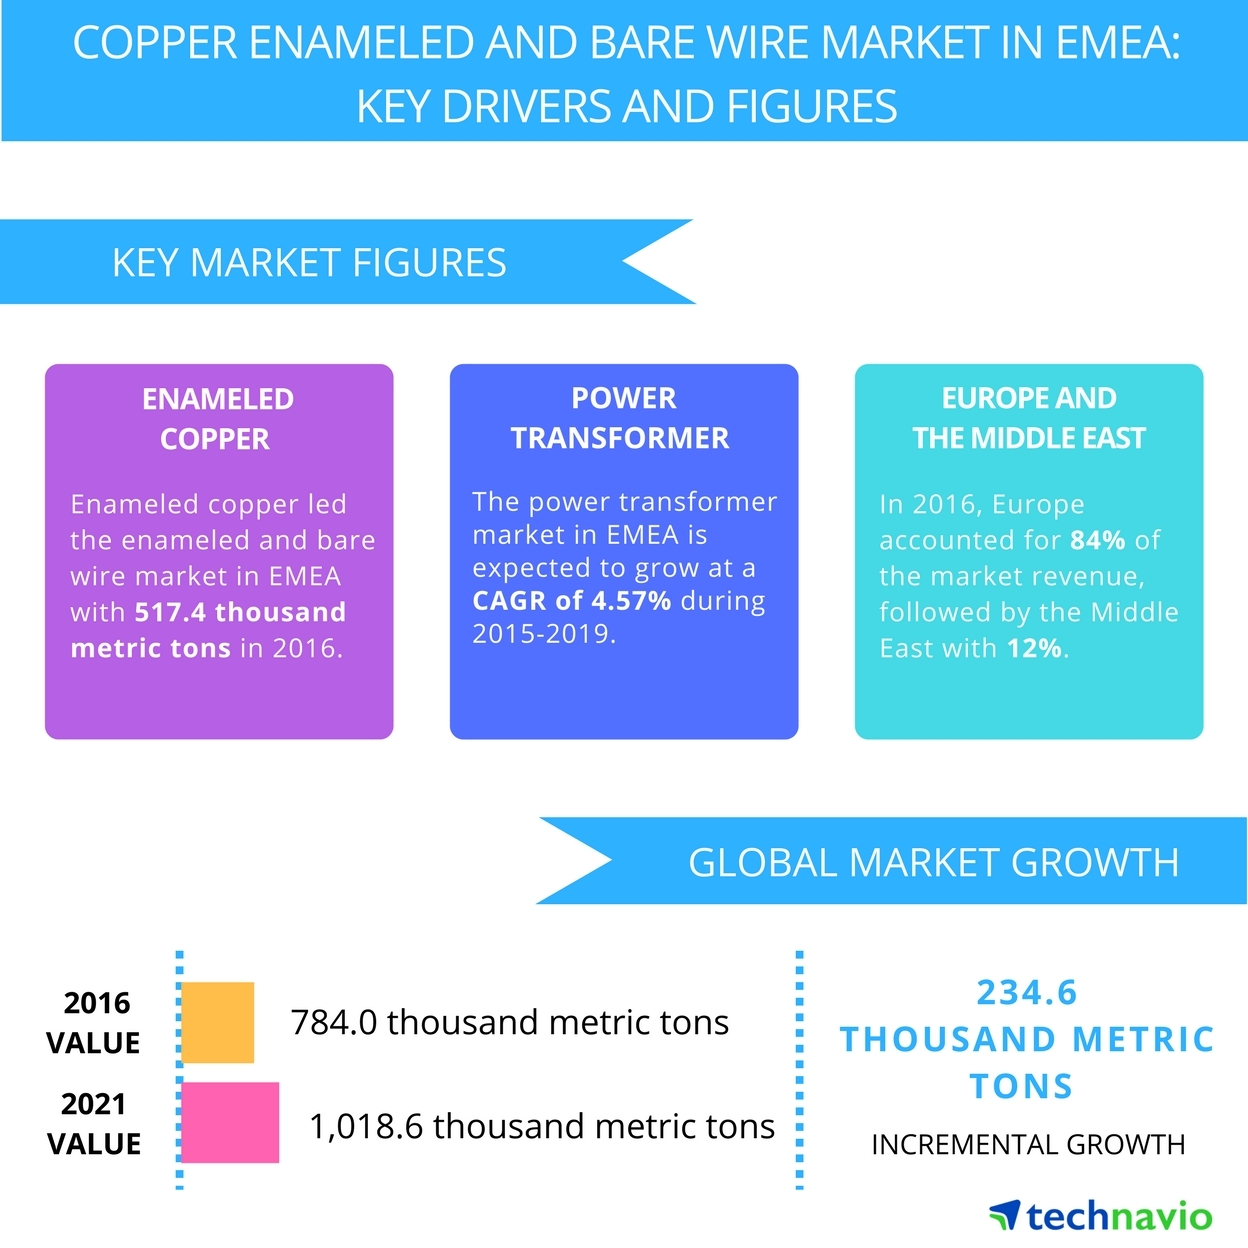 Top 3 Trends Impacting The Copper Enameled And Bare Wire Market In House Wiring Strategy Emea Through 2021 Technavio Business